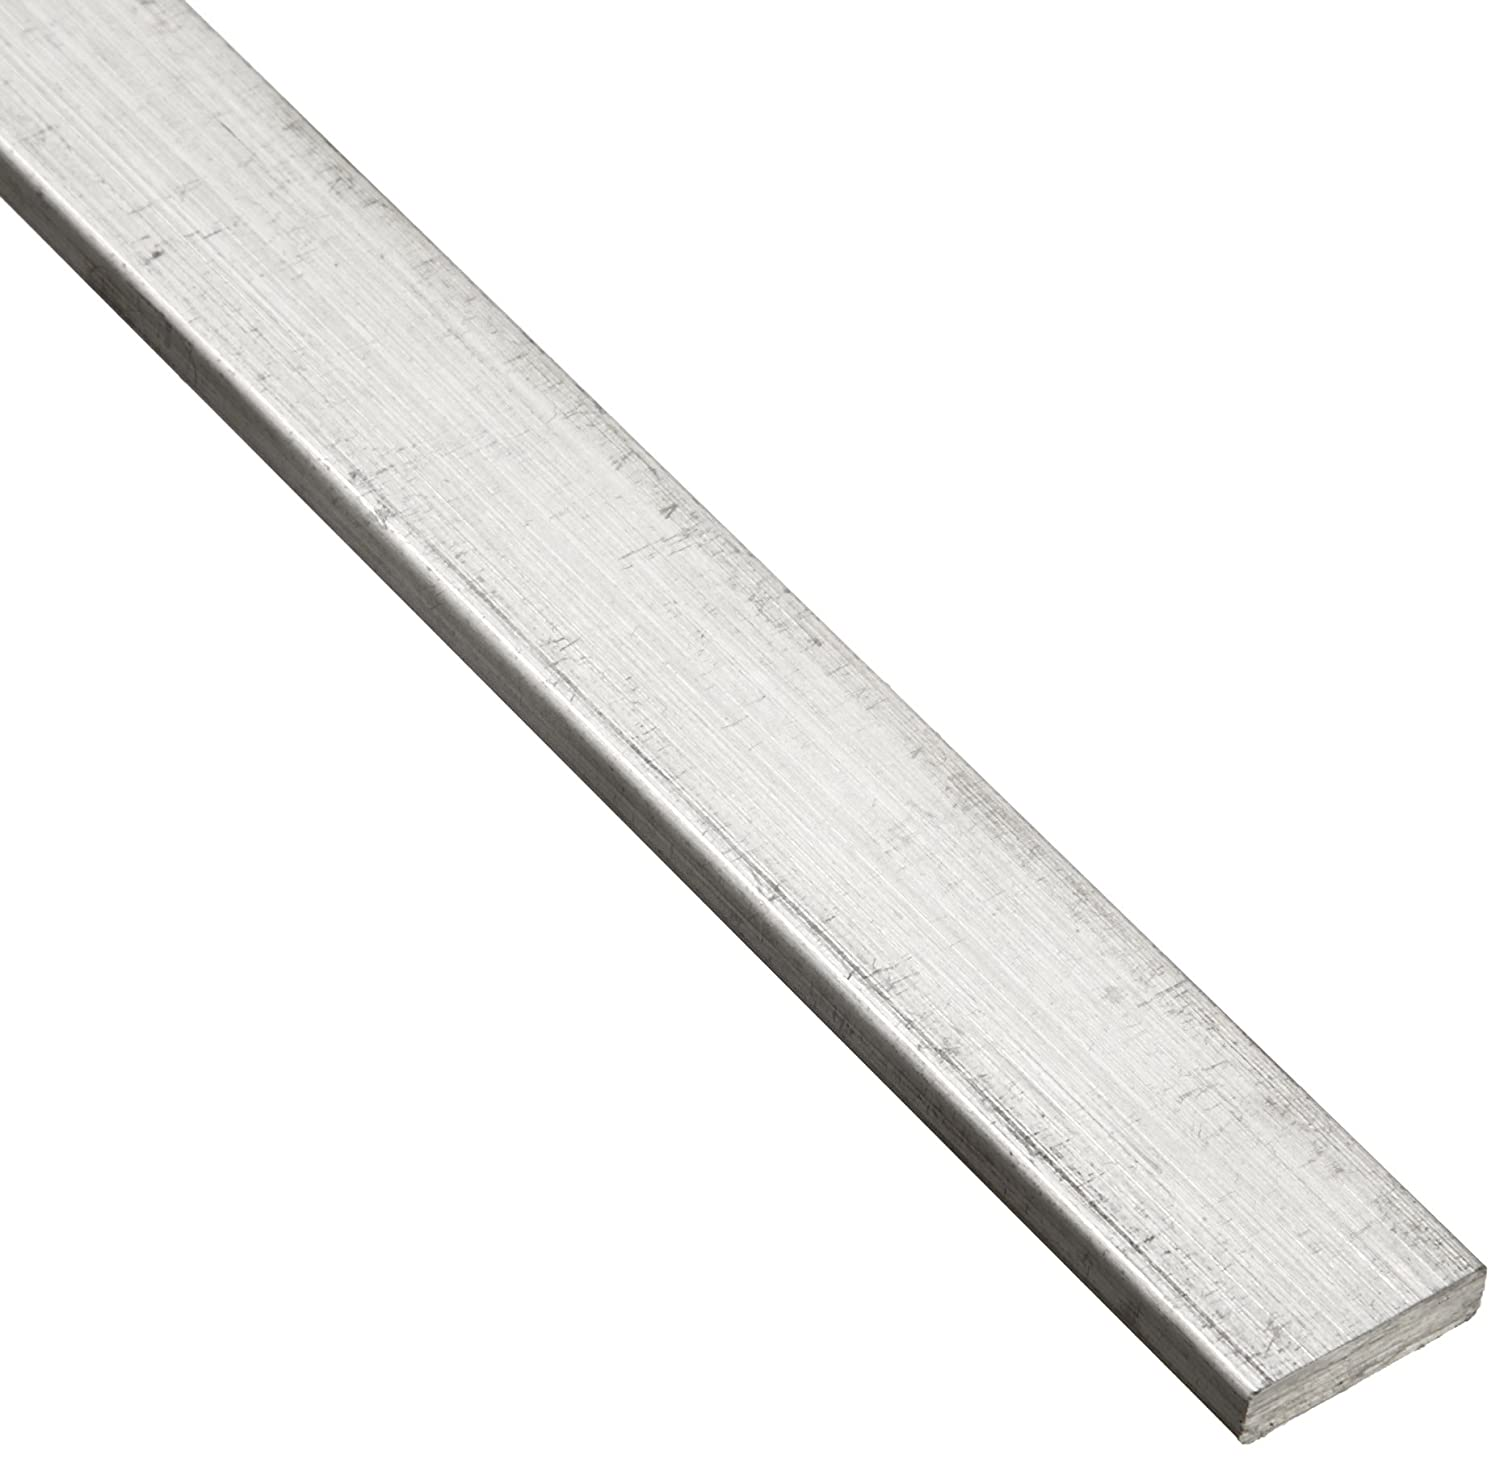 6061 Aluminum Rectangular Bar, Unpolished (Mill) Finish, T6511 Temper, AMS QQ-A-200/8/ASTM B221, 5/8' Thickness, 2-1/4' Width, 36' Length 5/8 Thickness 2-1/4 Width 36 Length Small Parts Inc F61.582.14T6511x36